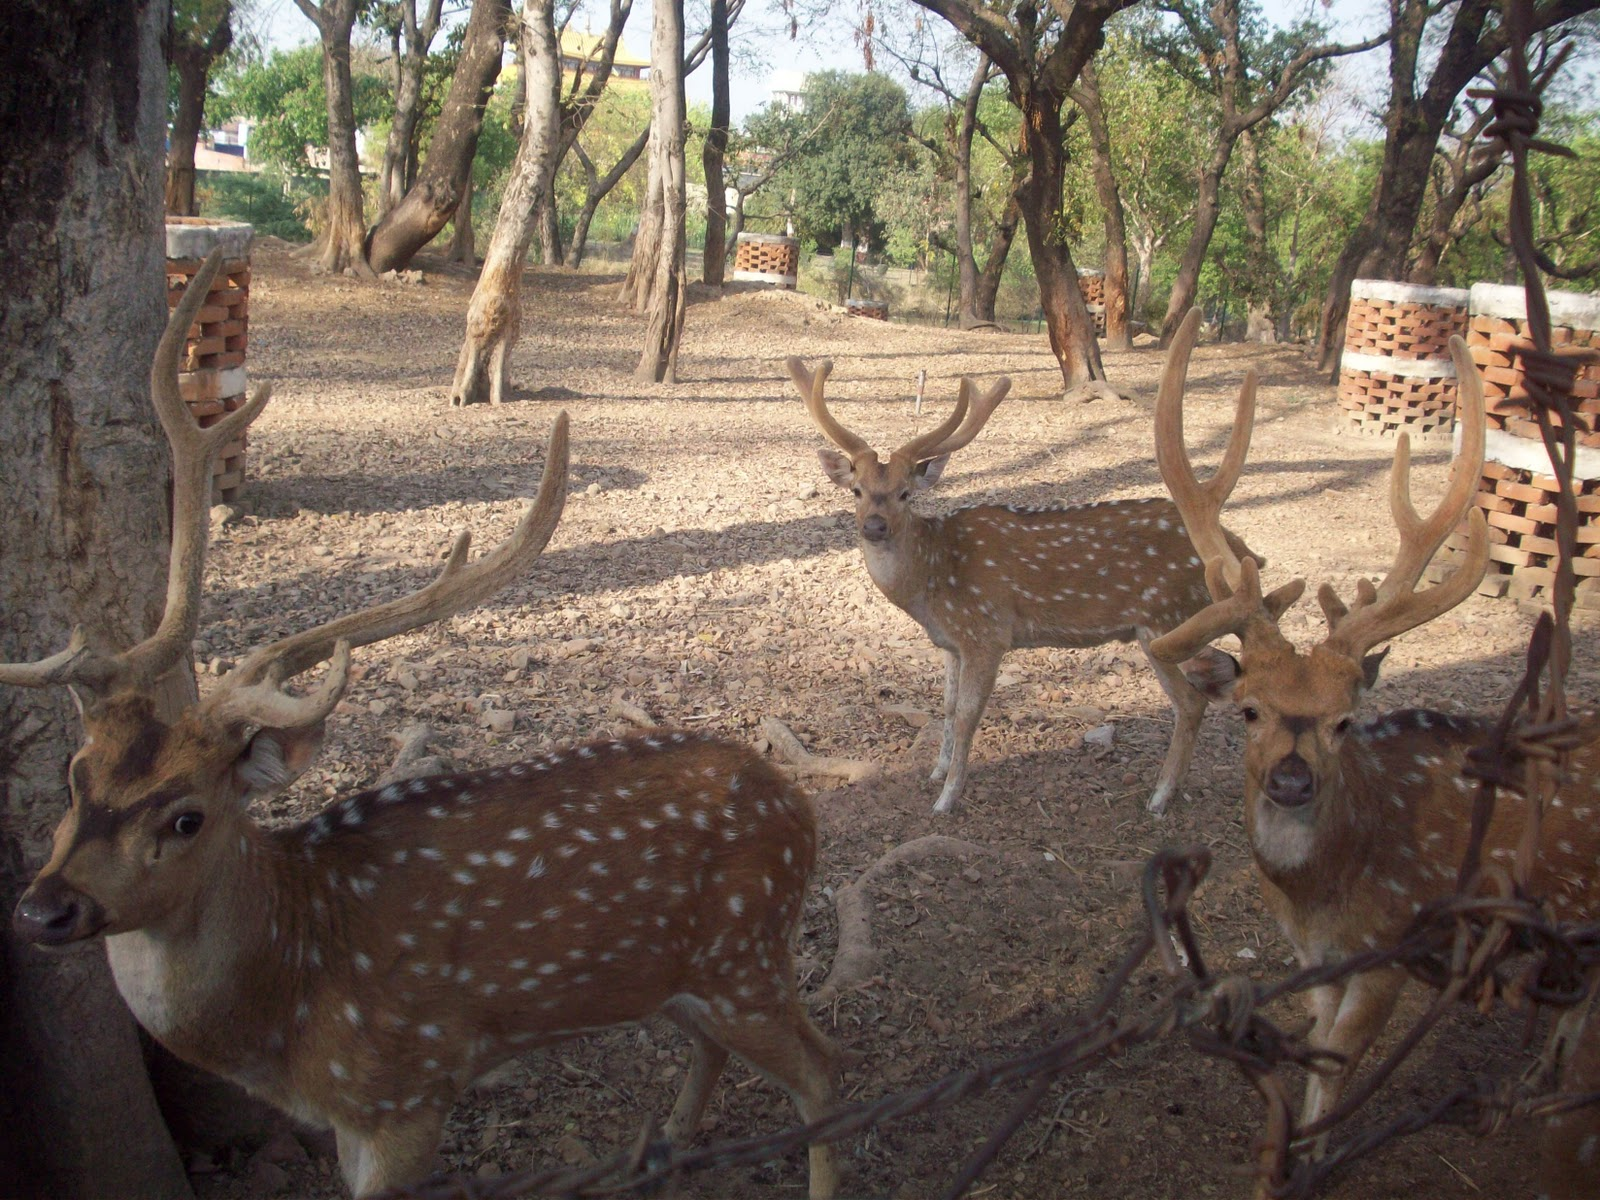 Fish aquarium in varanasi - Deer Park Varanasi A Safe Dwelling Place For The Animals My Journey Through India